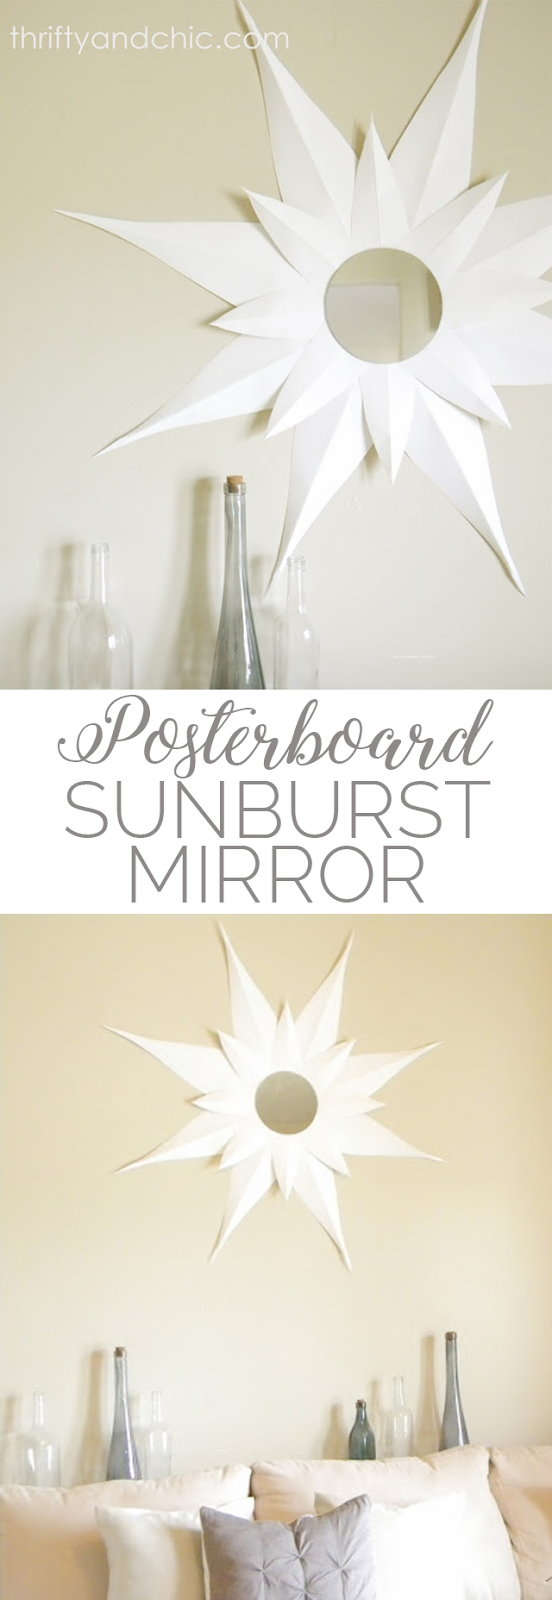 sunburst mirror made from poster board! DIY mirror tutorial